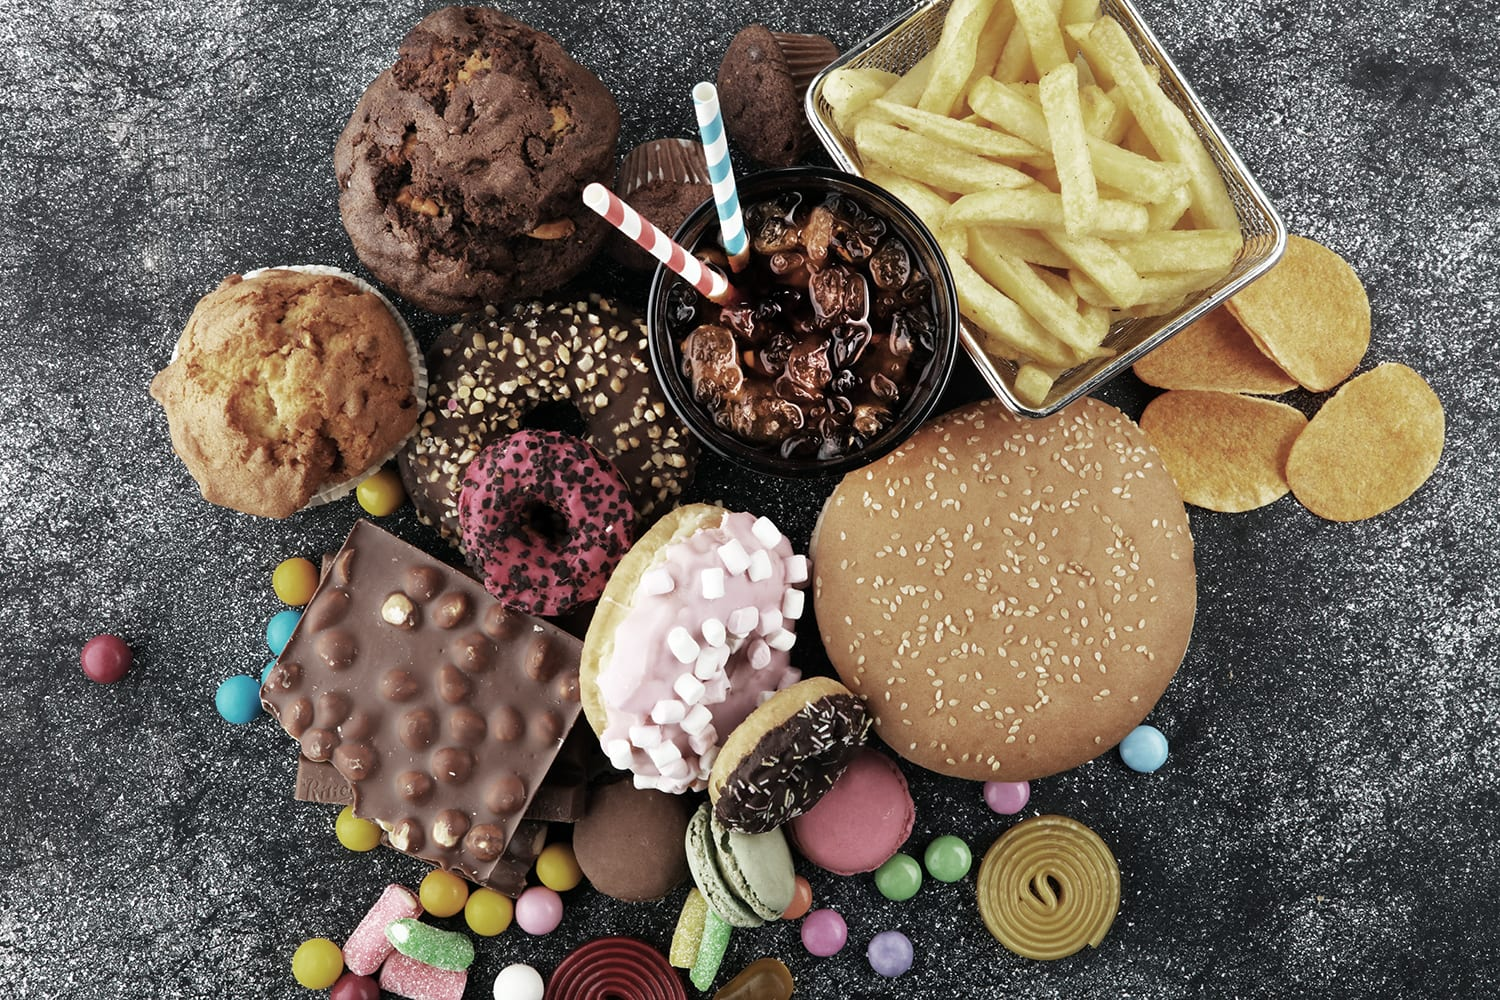 College President and Obesity Action Scotland welcome junk food ban